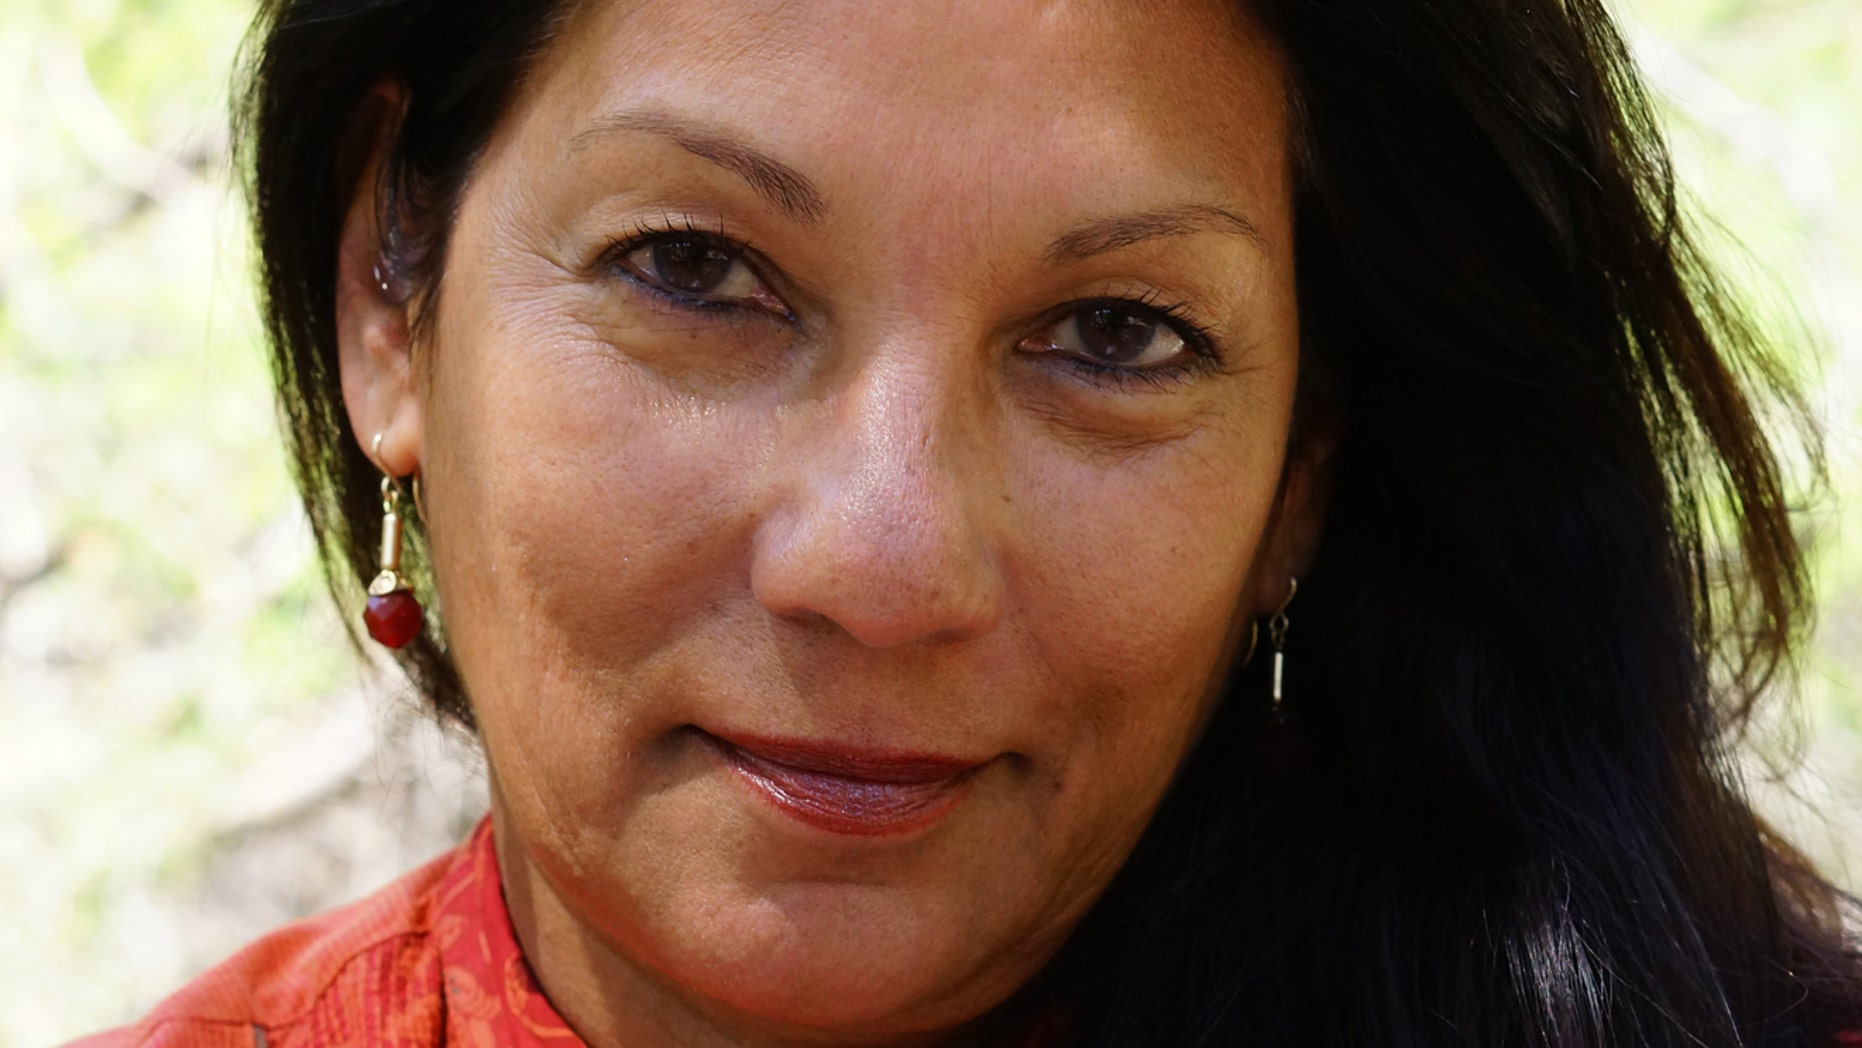 De Sousa faces prison time in Italy for her role in a CIA interrogation.